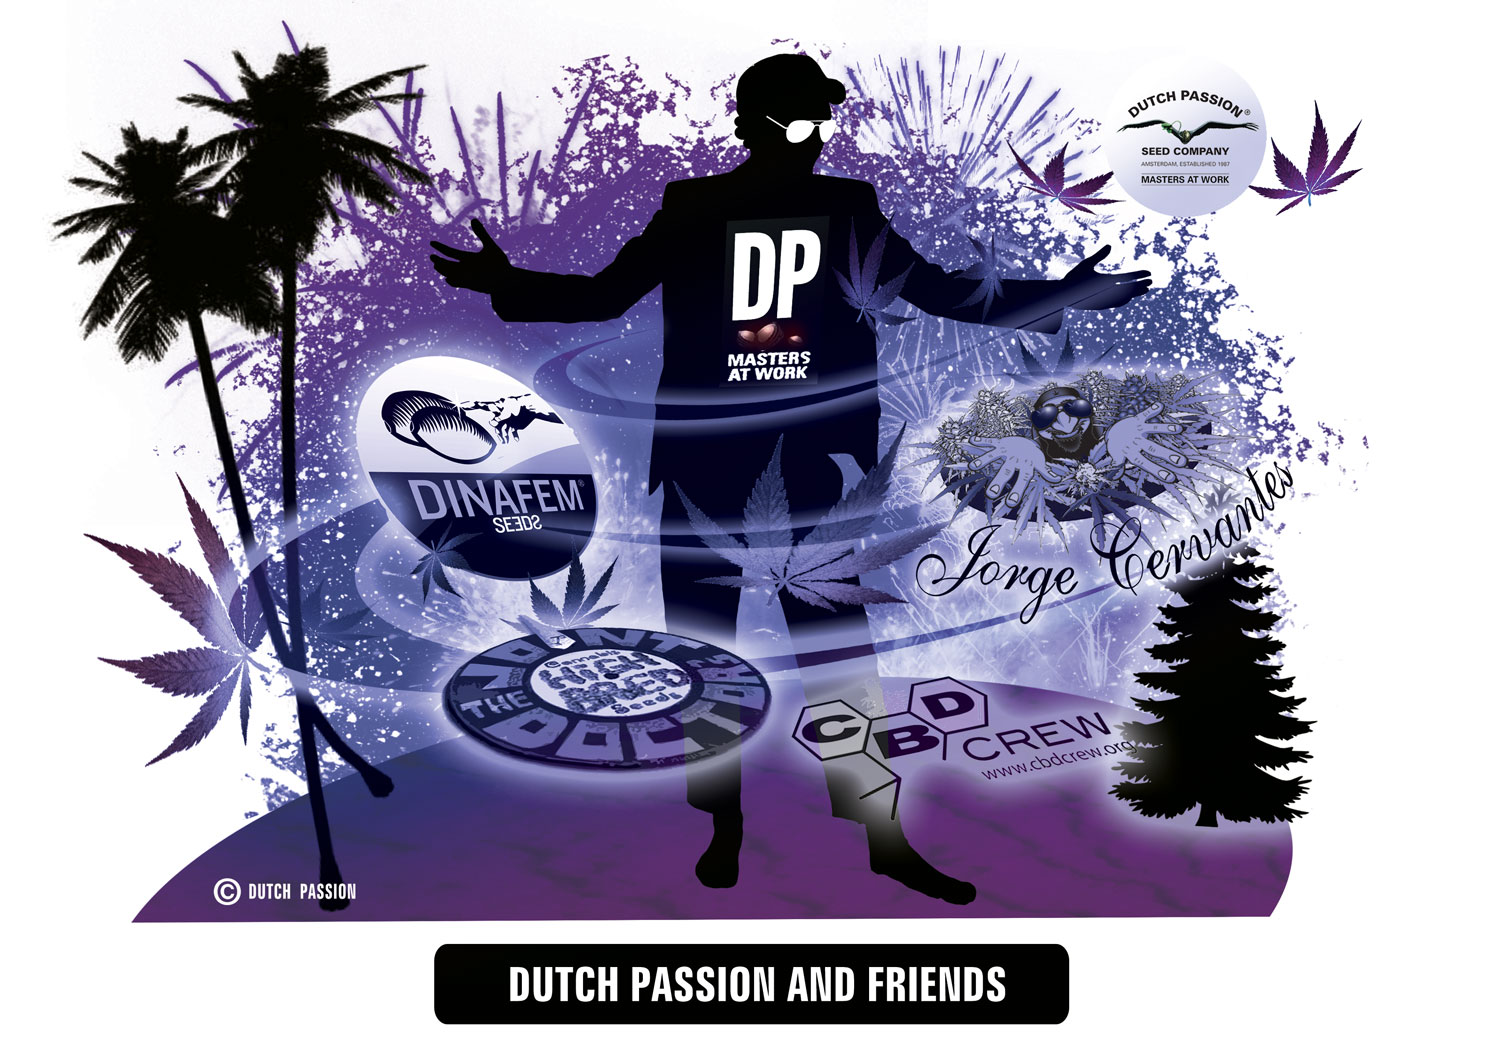 Dutch Passion - Collaborations on breeding projects